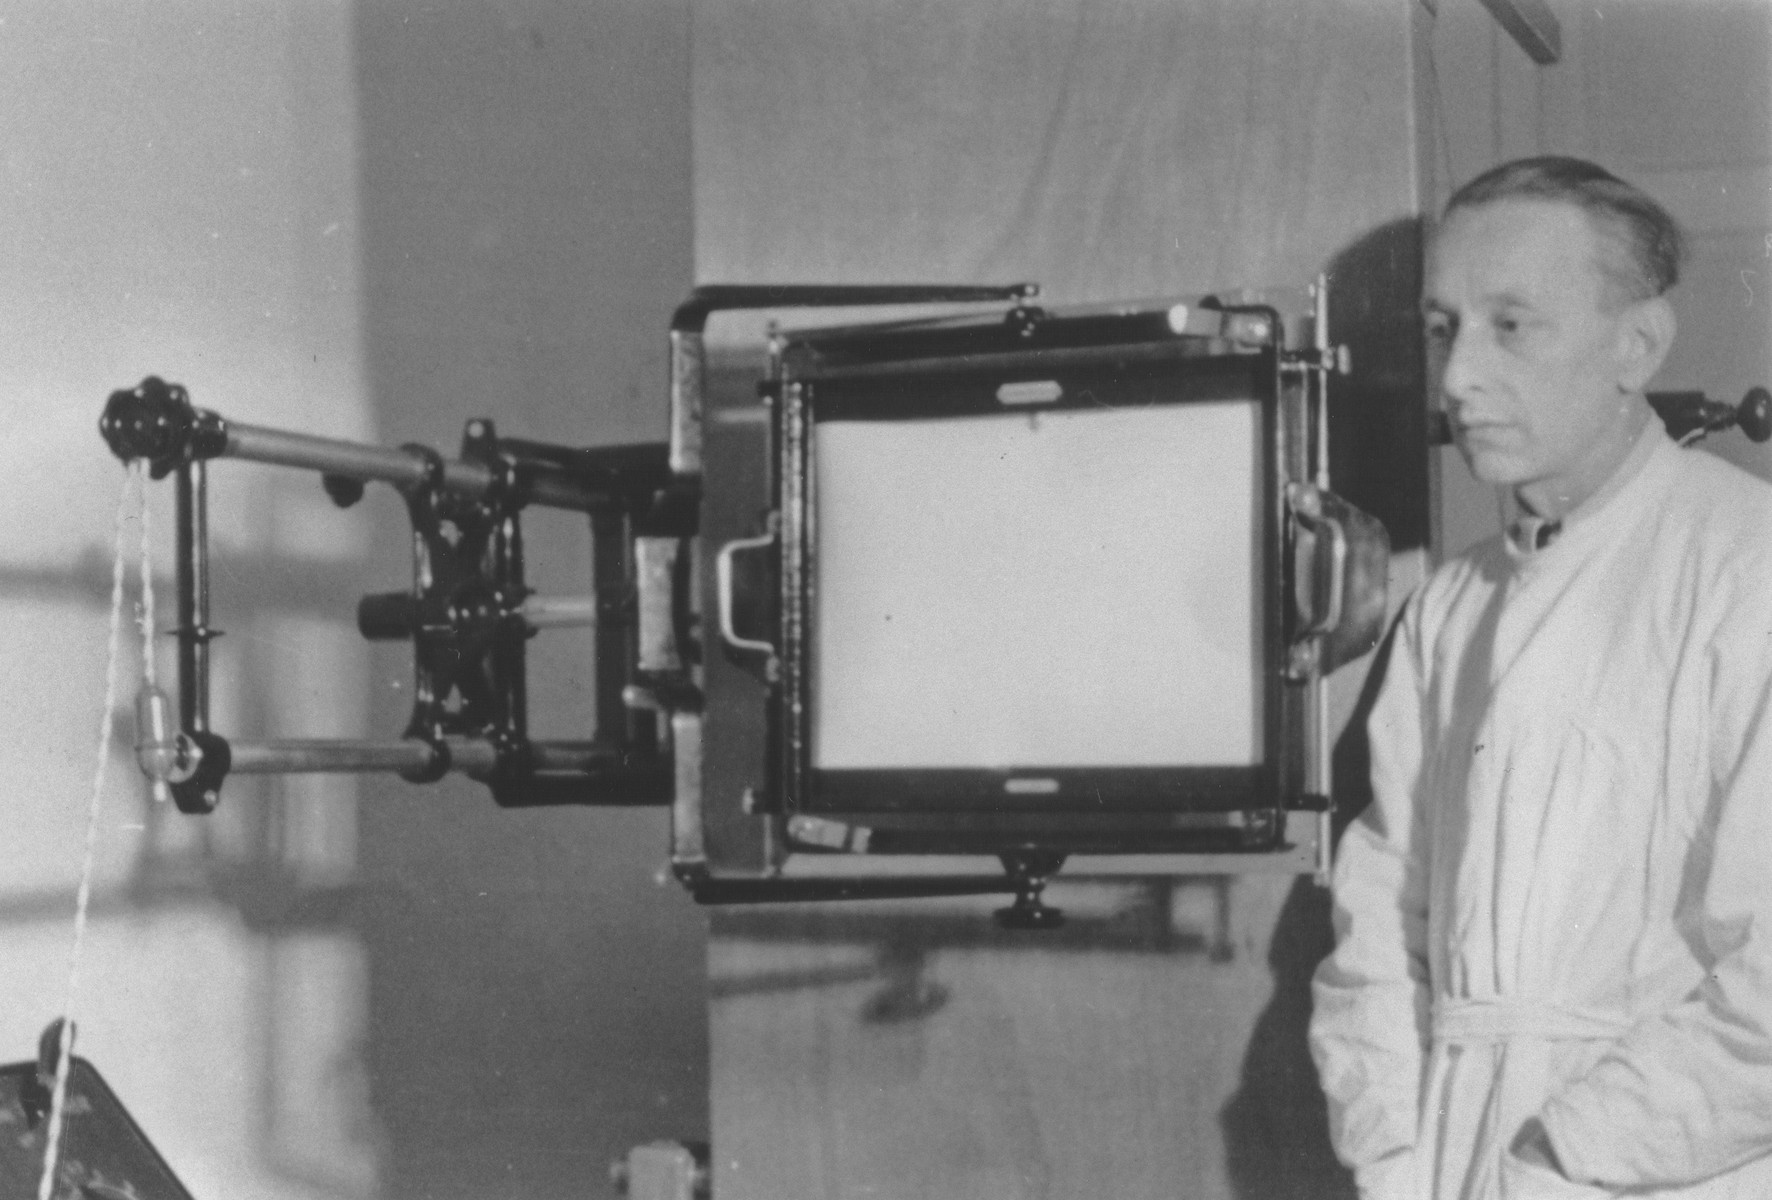 Jewish refugee, Dr. Mendel Kleinman, stands next to an x-ray machine in the hospital in Turka nad Stryjem.